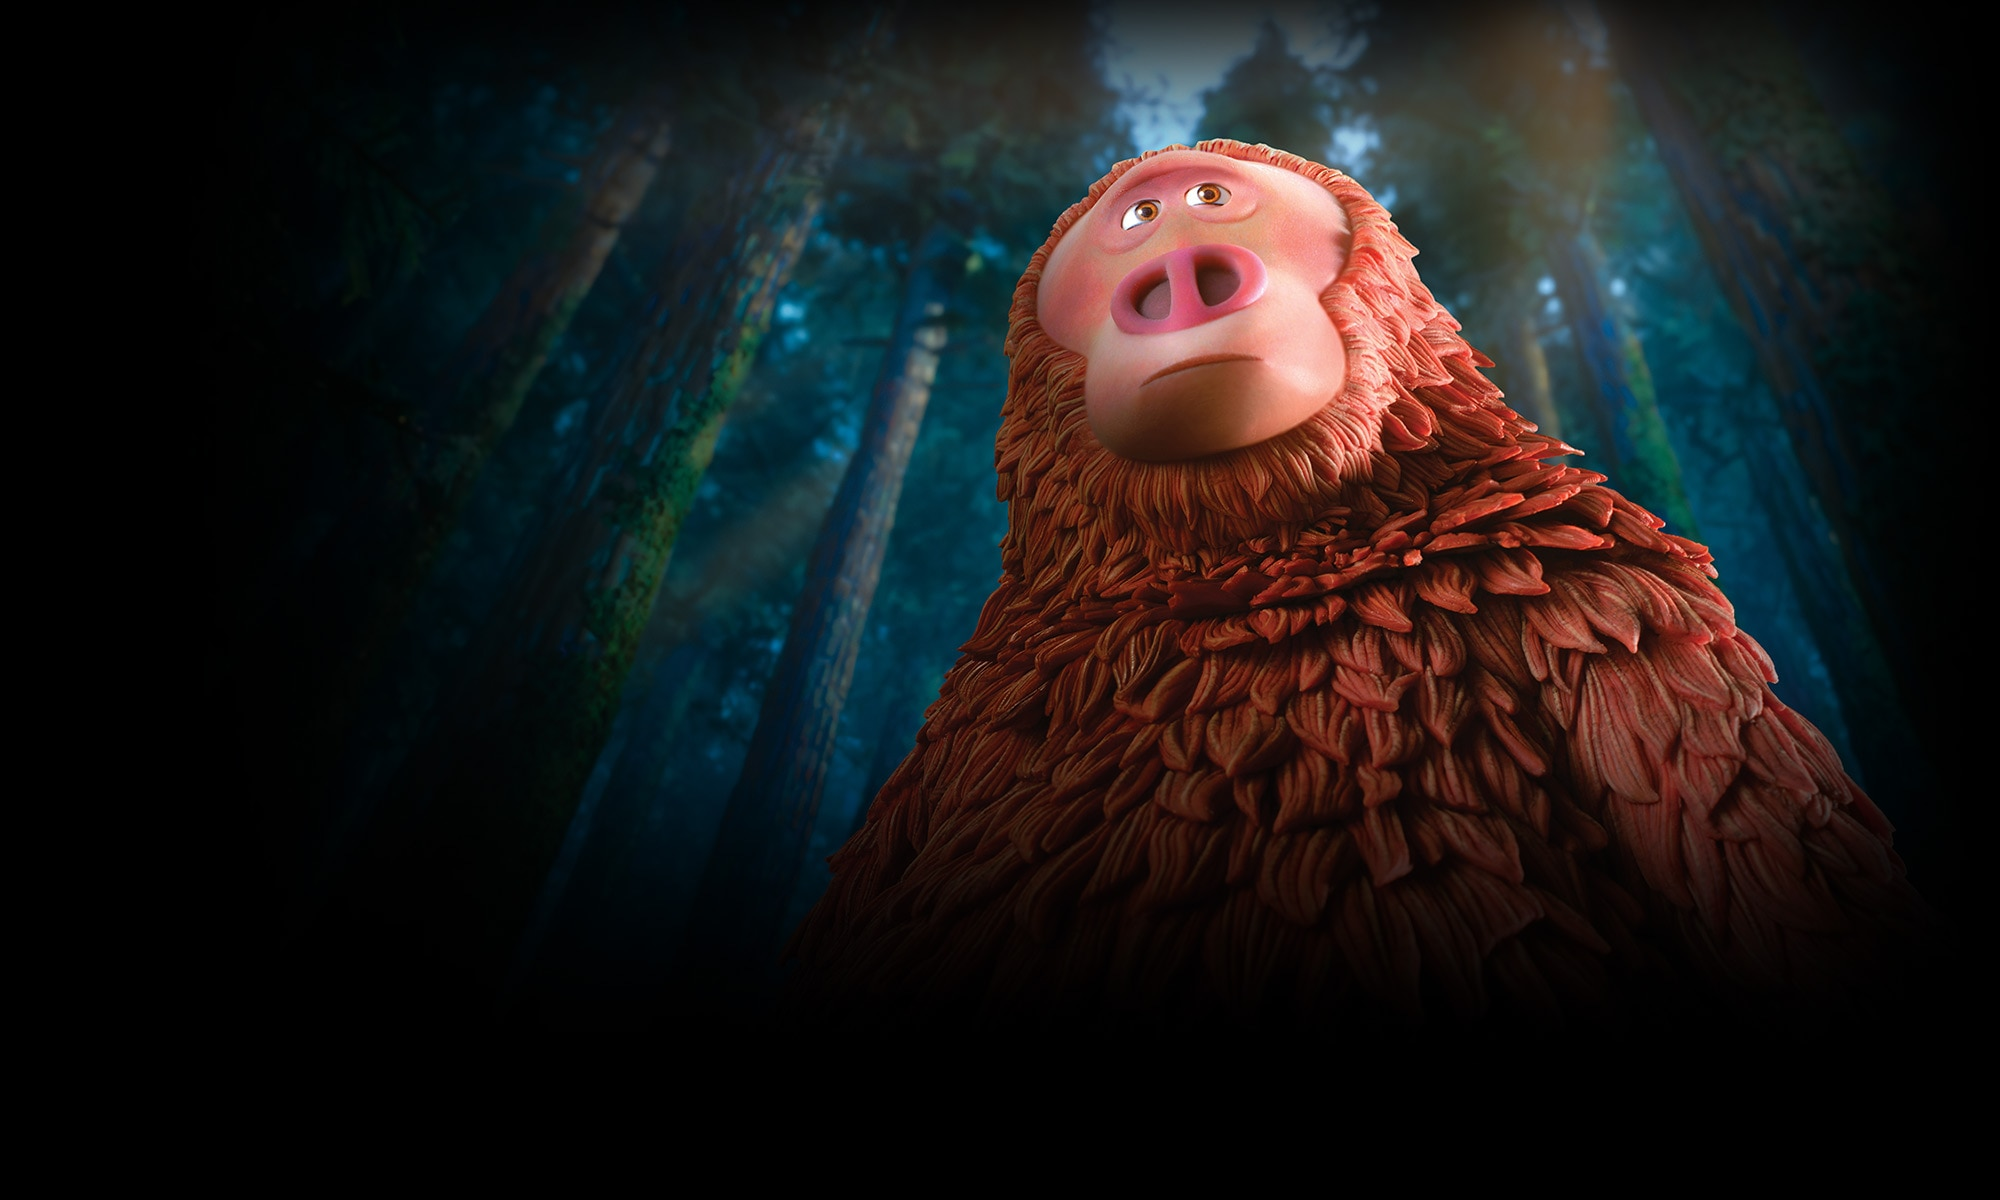 Still from the film Missing Link. Image courtesy of LAIKA.